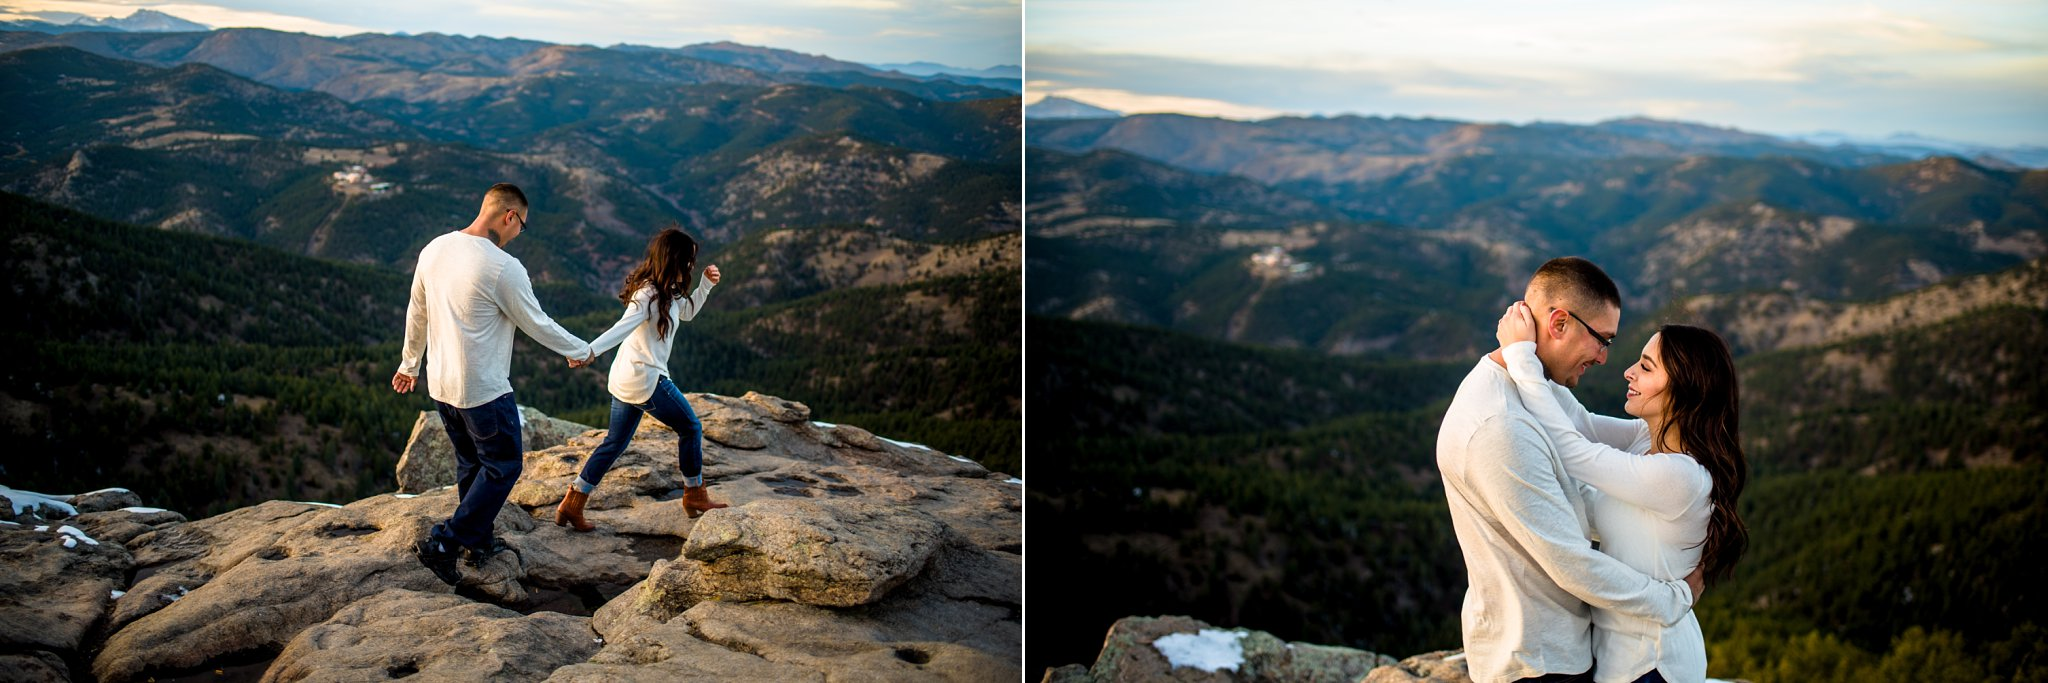 Lost Gulch Overlook Engagement Session_0005.jpg